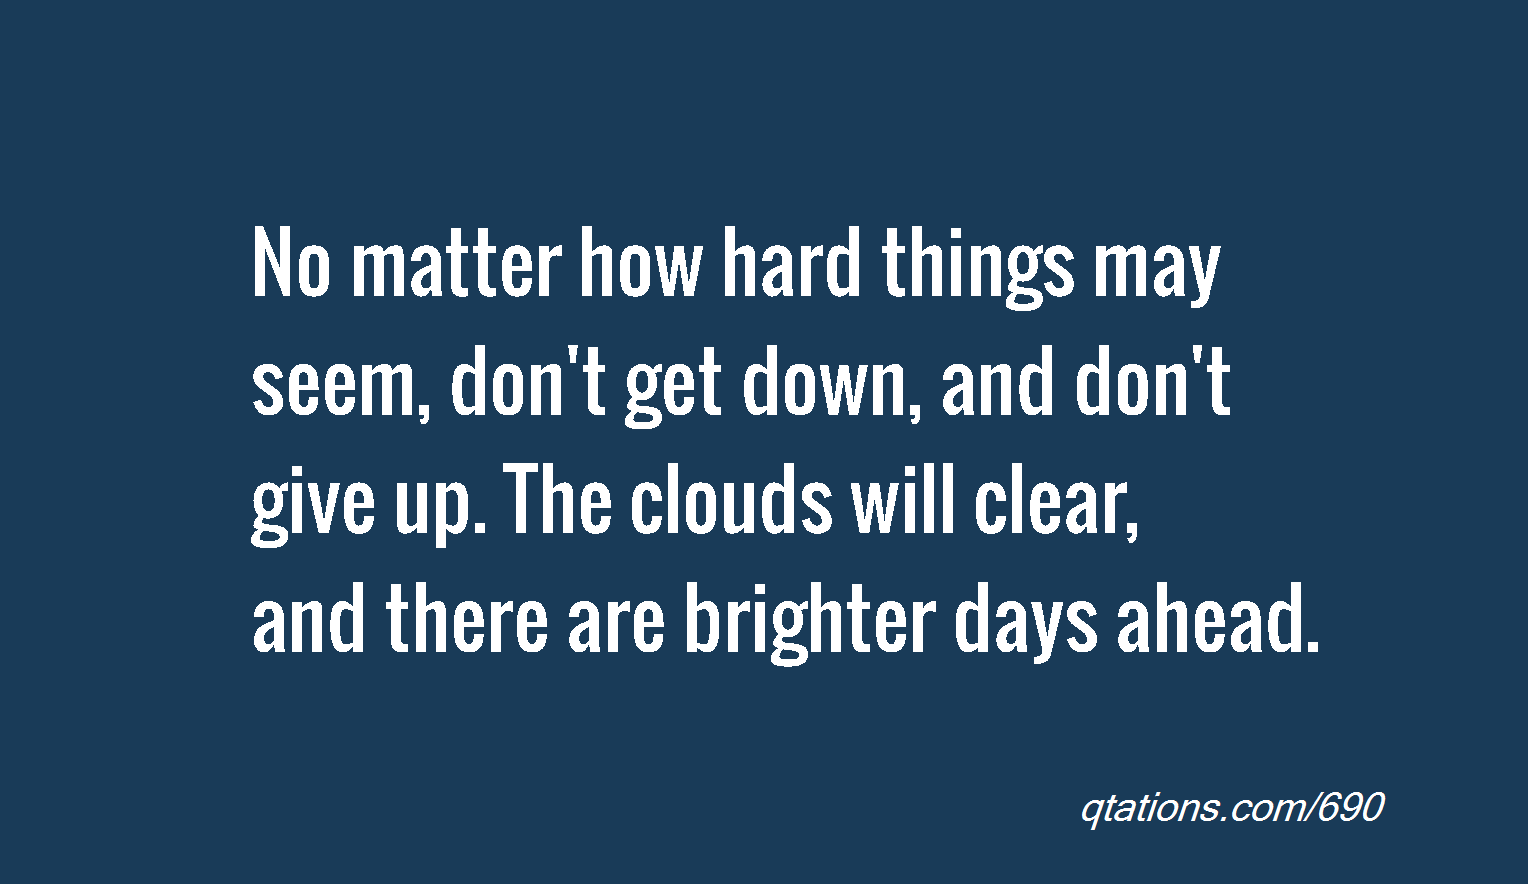 Quotes About Better Days Quotesgram: Brighter Days Ahead Quotes. QuotesGram